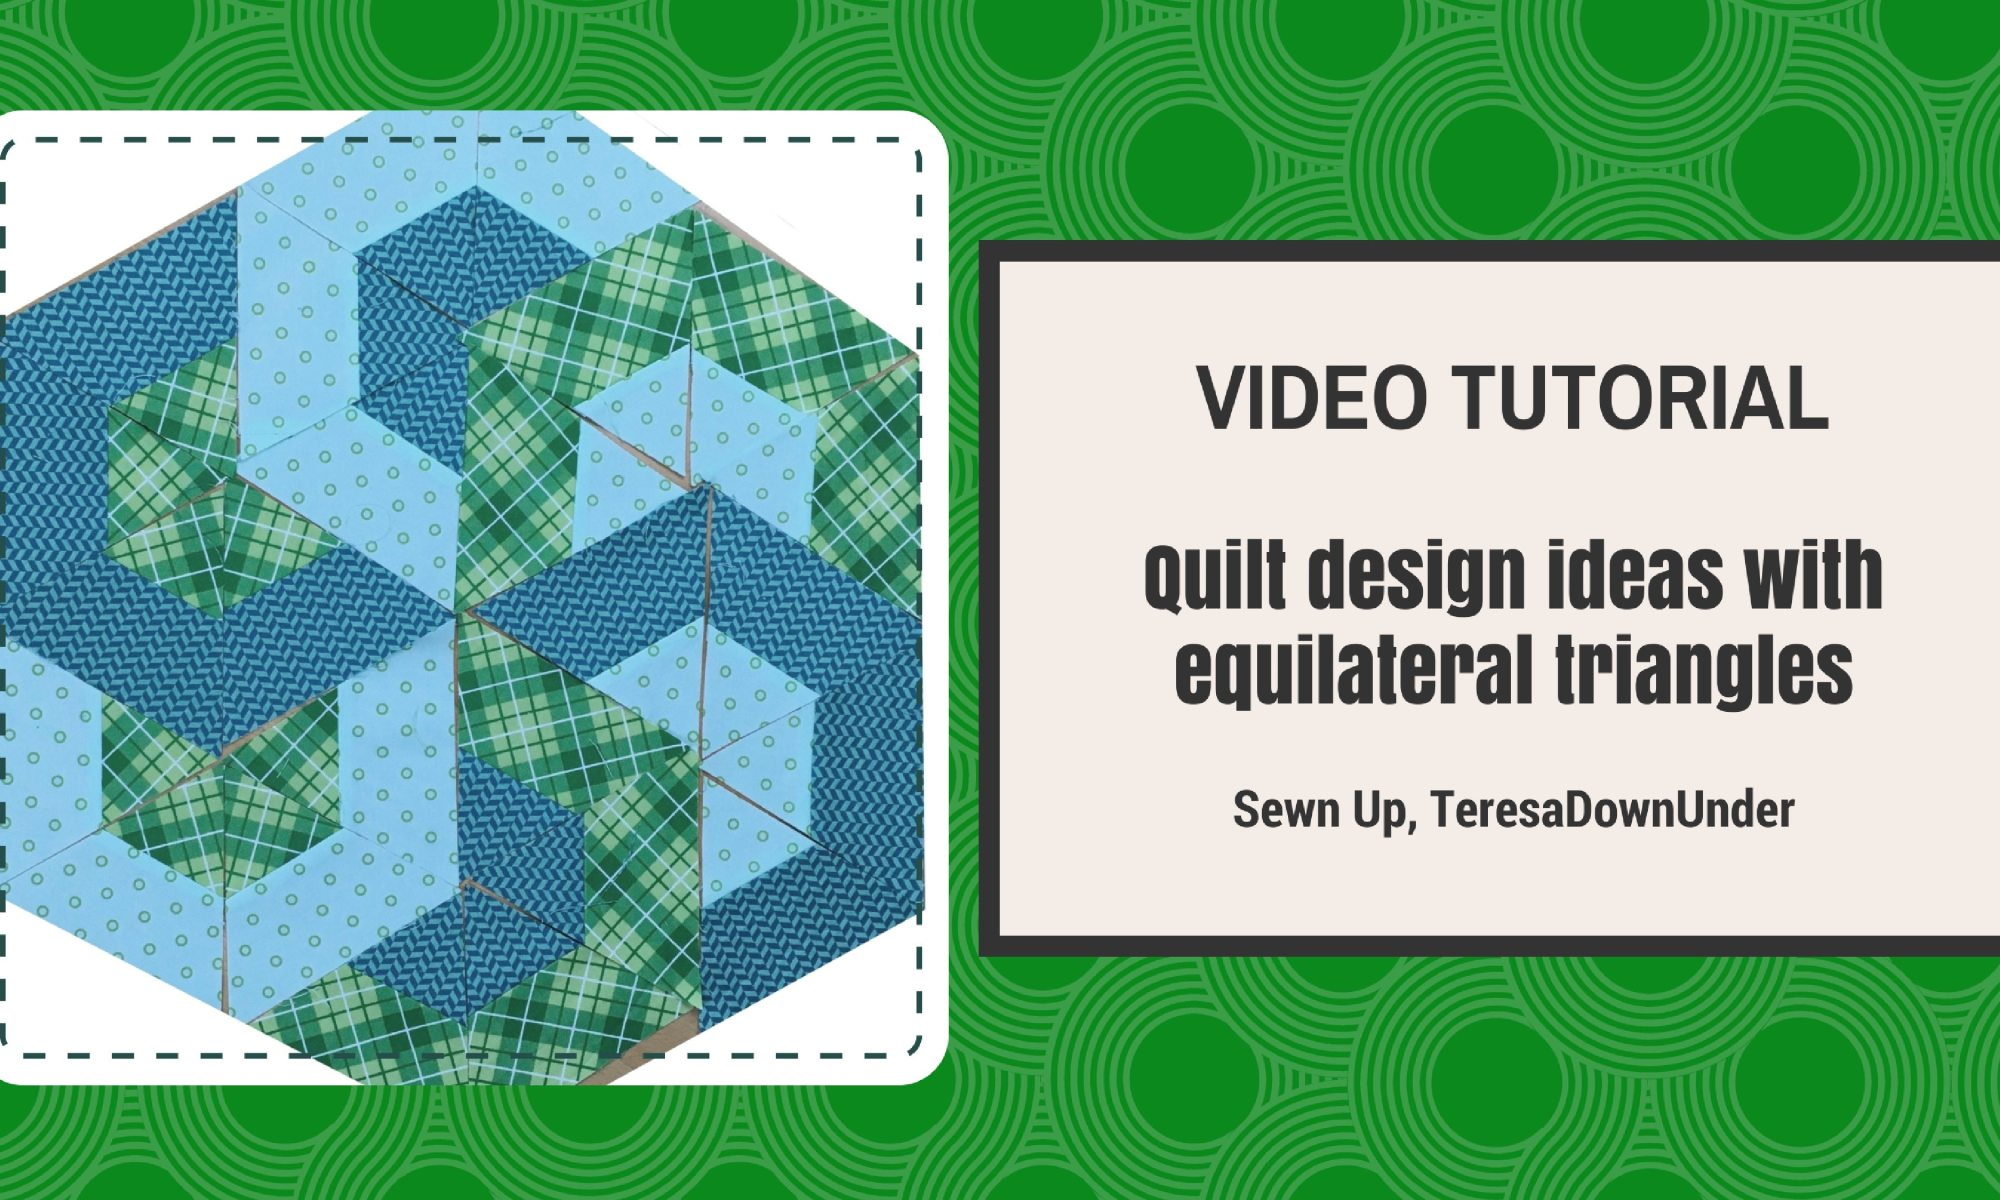 Video tutorial: Quilt design ideas with equilateral triangles